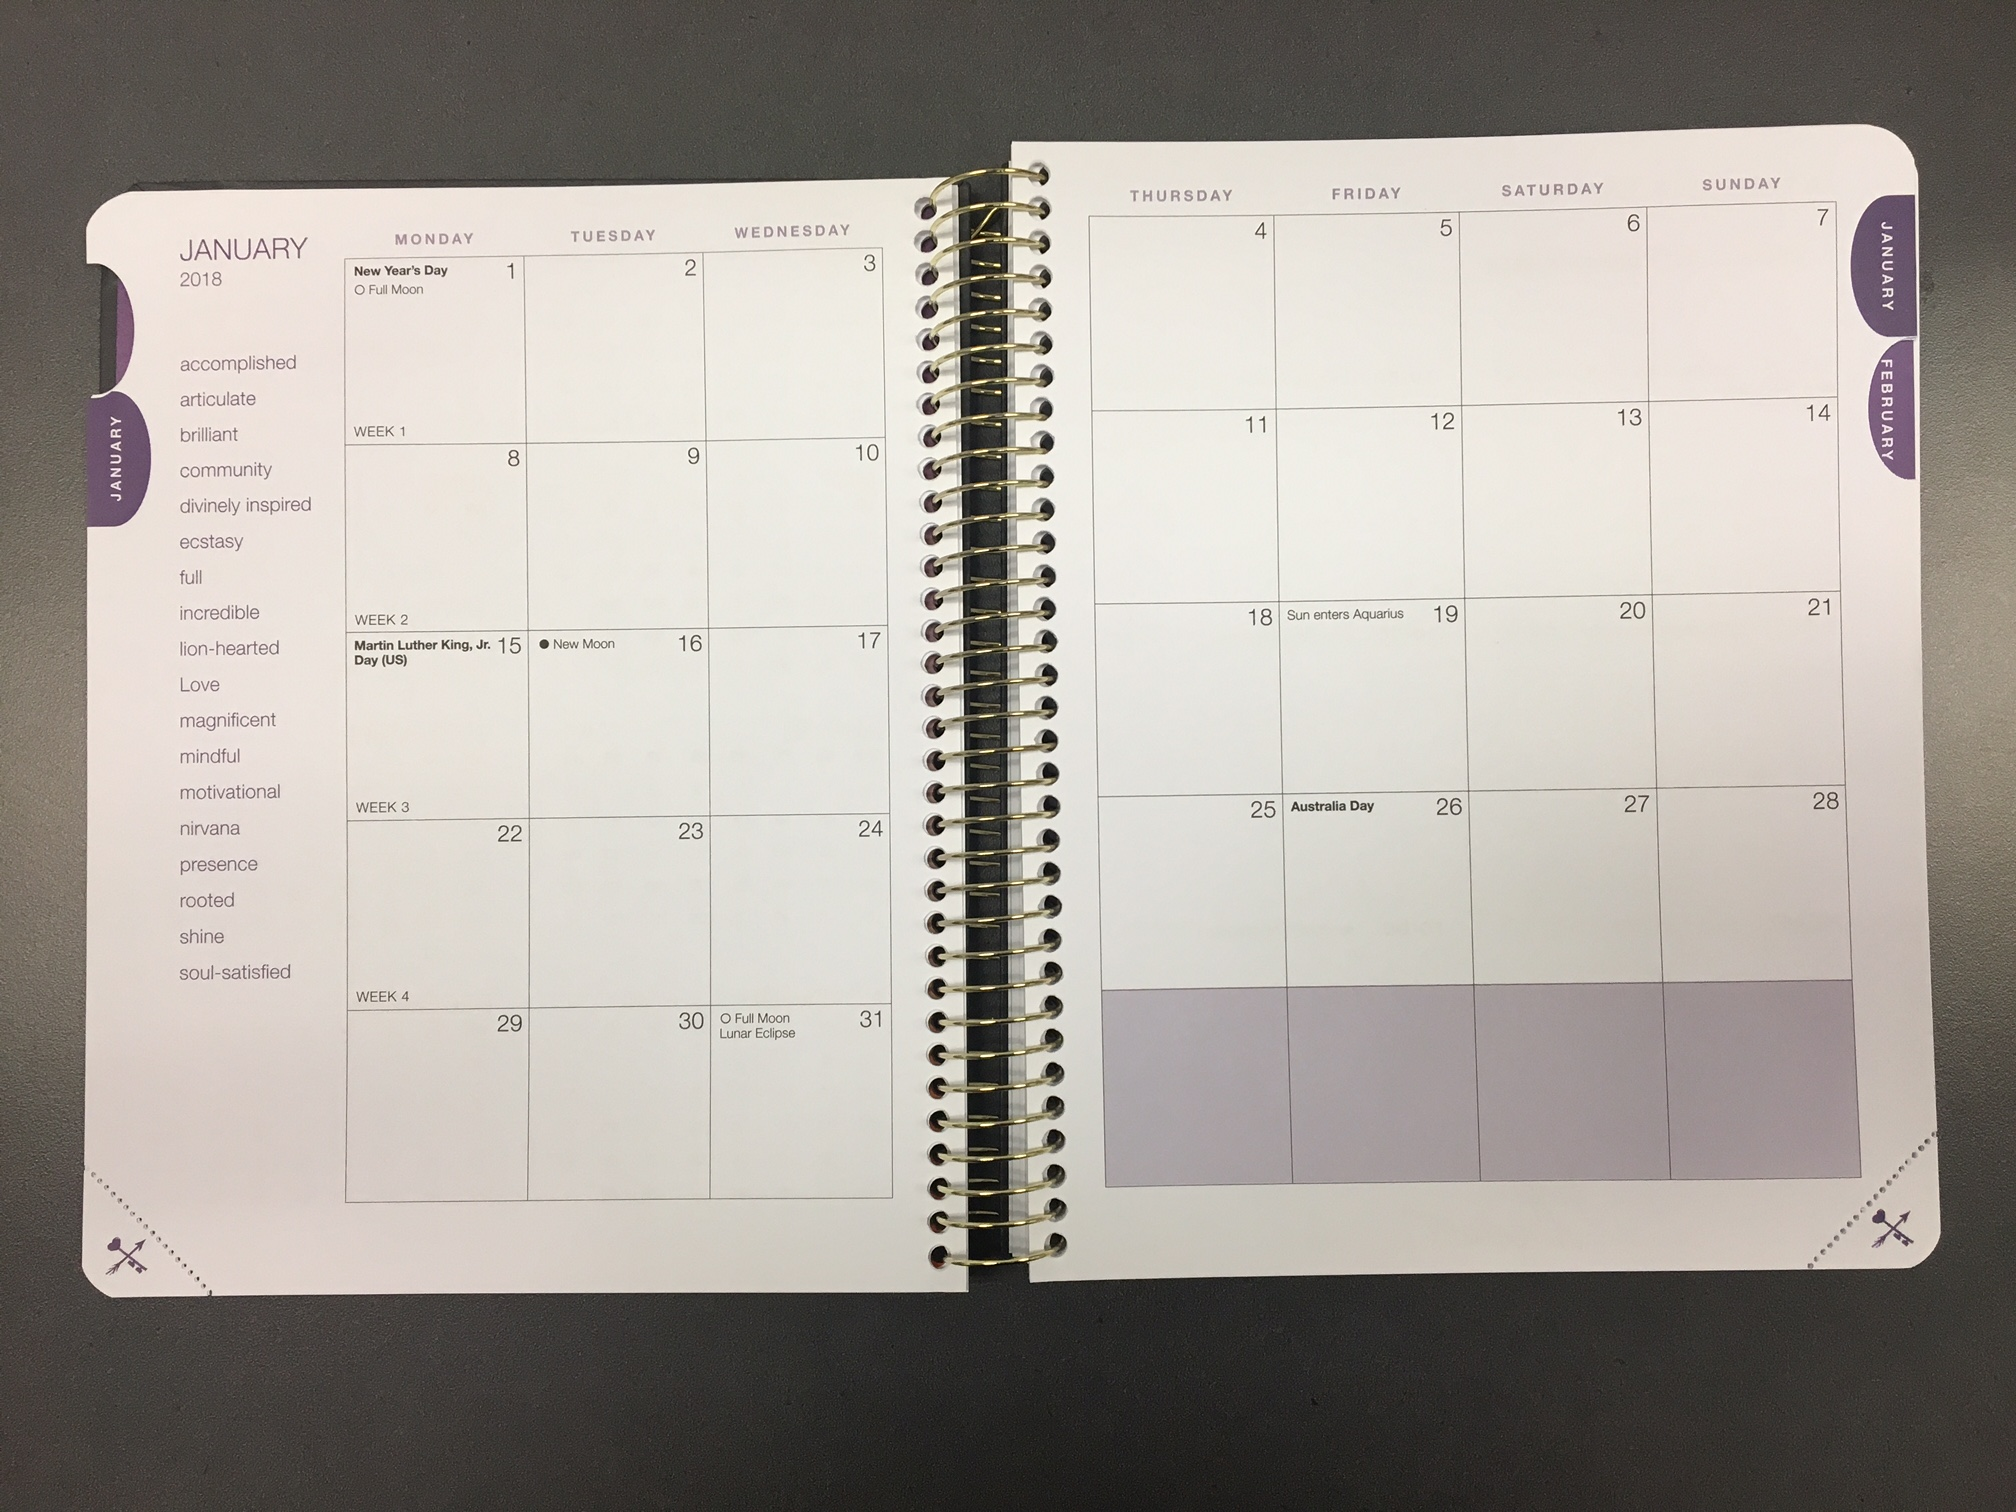 2018 desire map planner monthly spread - One Organized Business with on